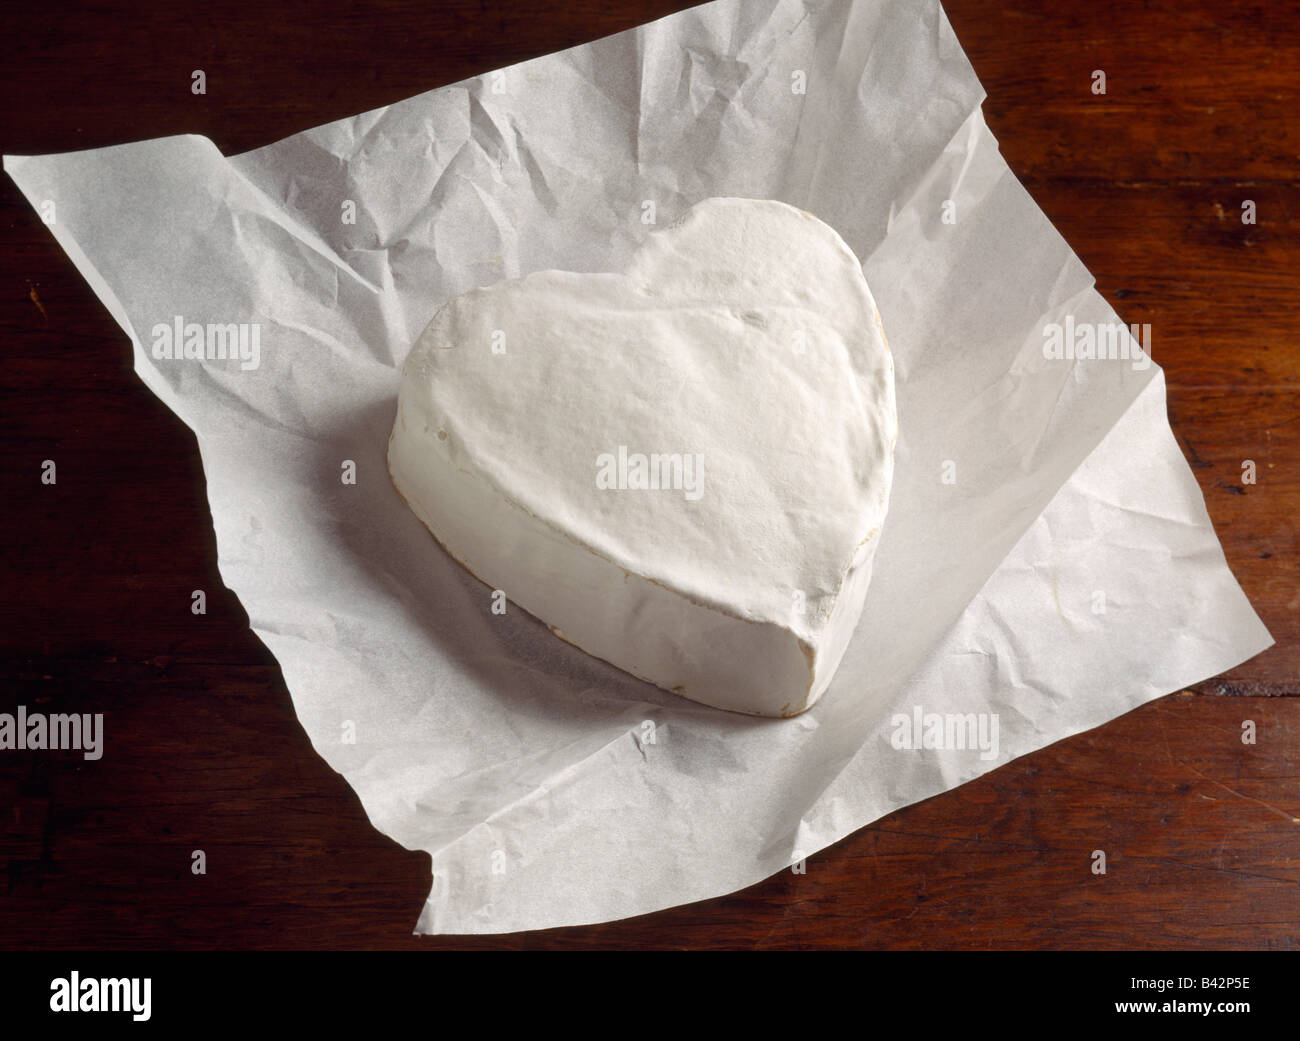 Neufchâtel cheese - Stock Image